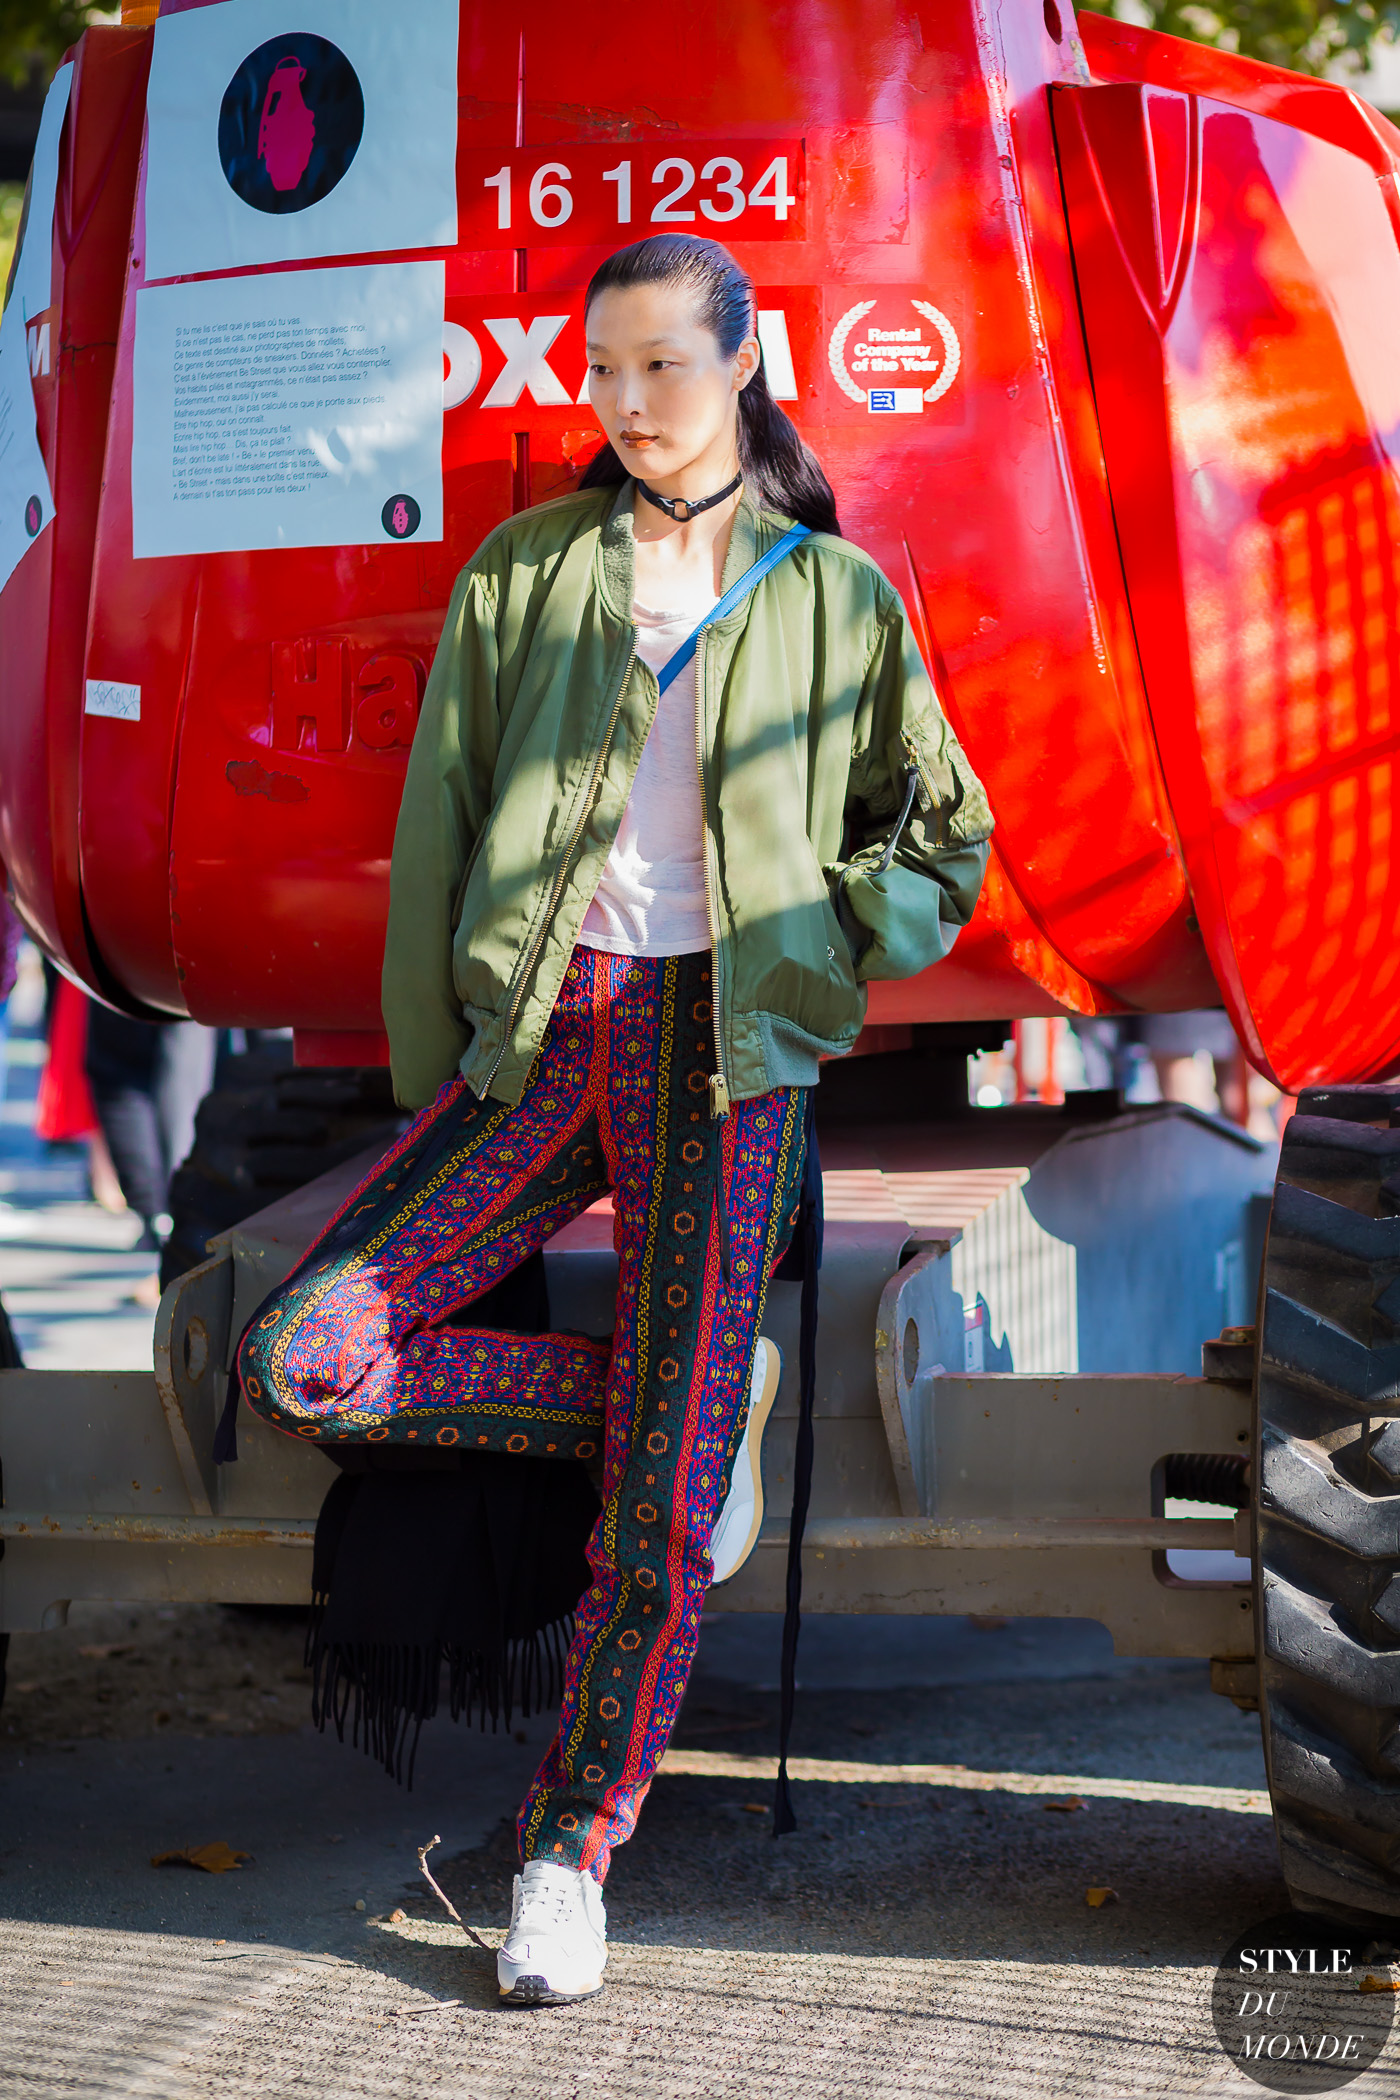 Sunghee Kim Street Style Street Fashion Streetsnaps by STYLEDUMONDE Street Style Fashion Photography